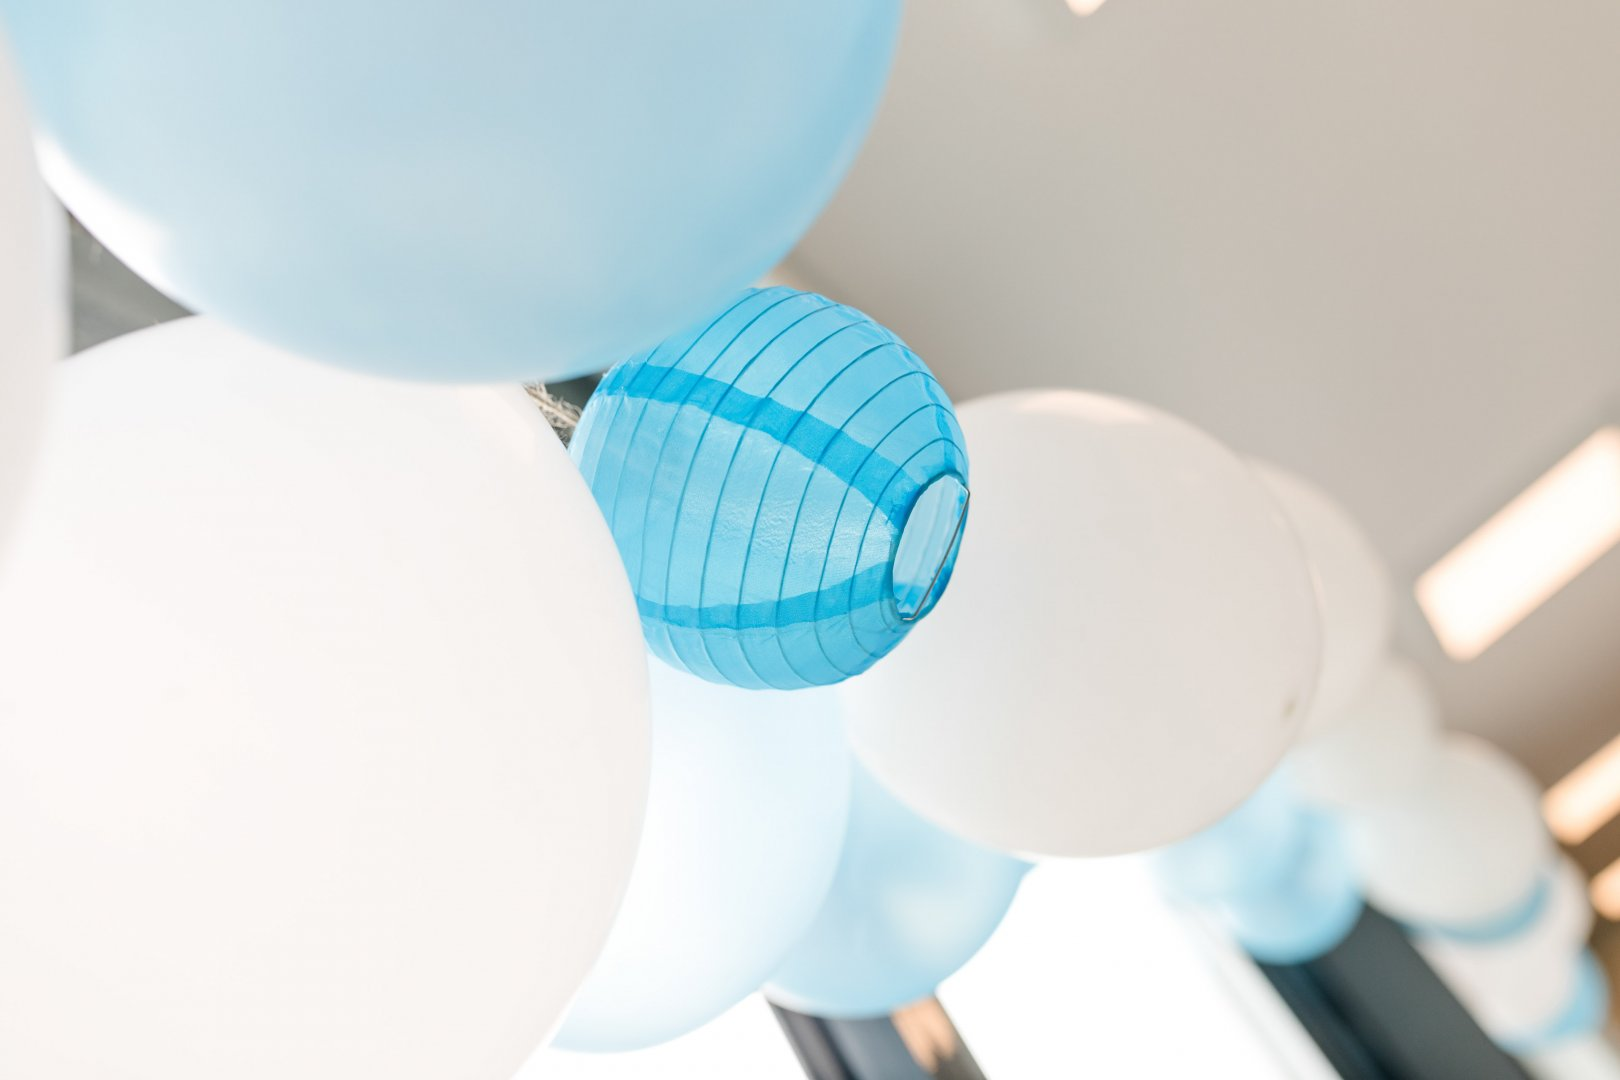 Blue Turquoise Balloon Room Toy Ceiling Party supply Turquoise